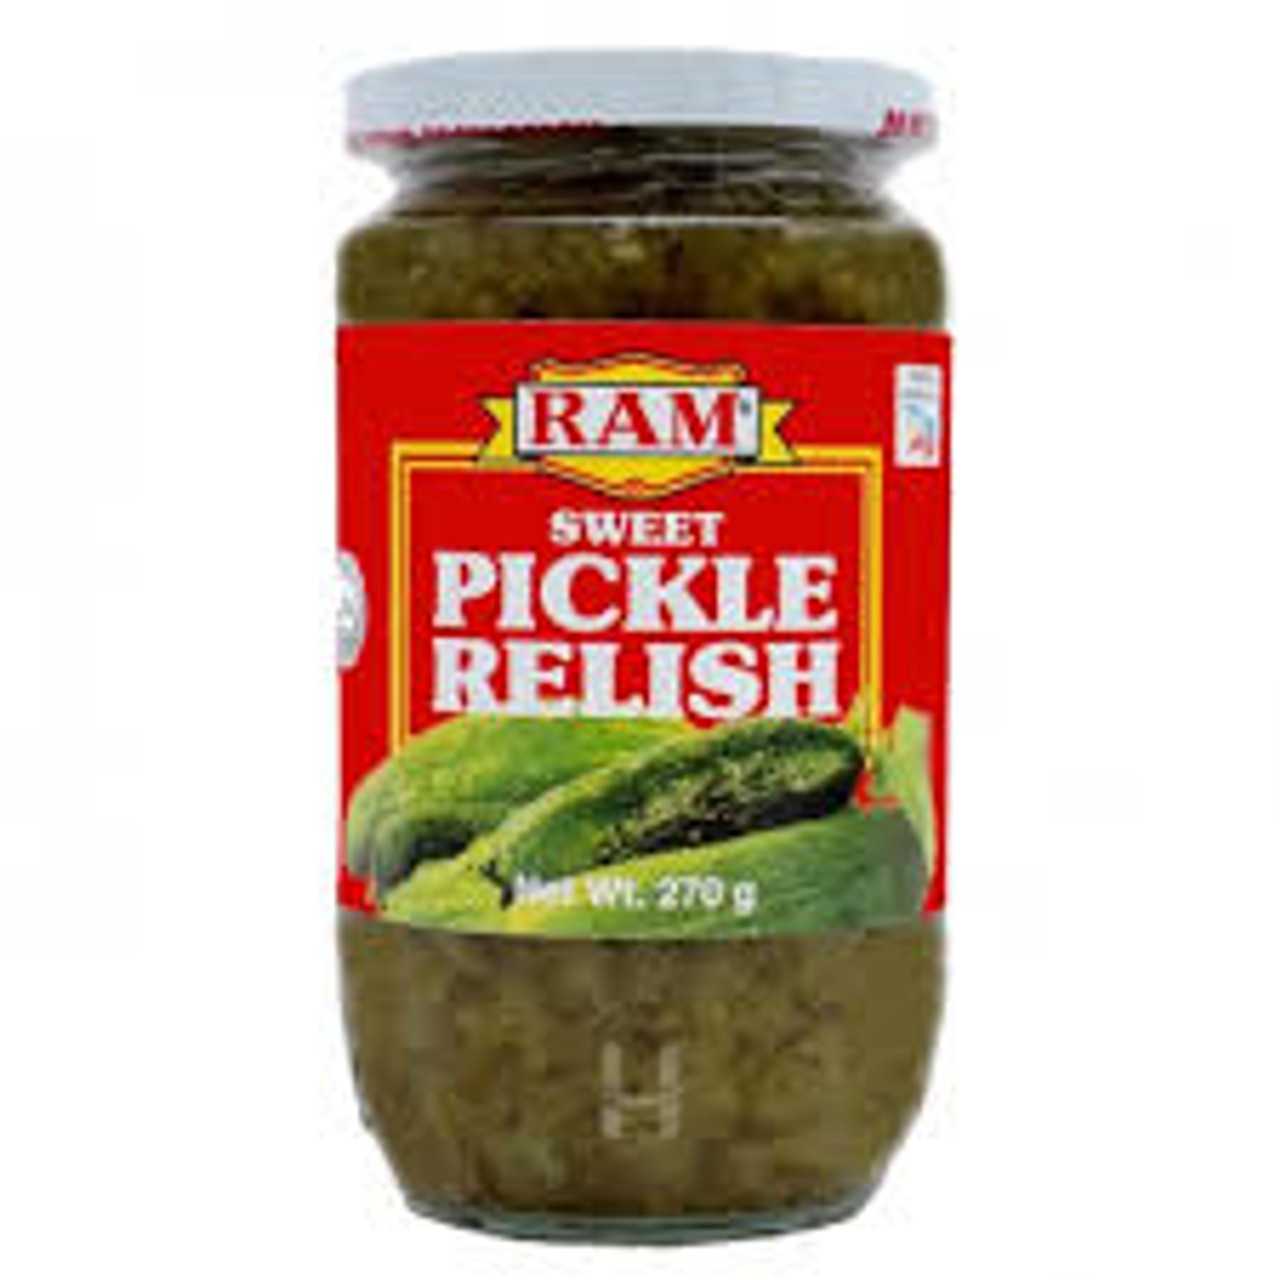 Ram Sweet Pickled Relish 270g Jd Pinoy Asian Grocery Store